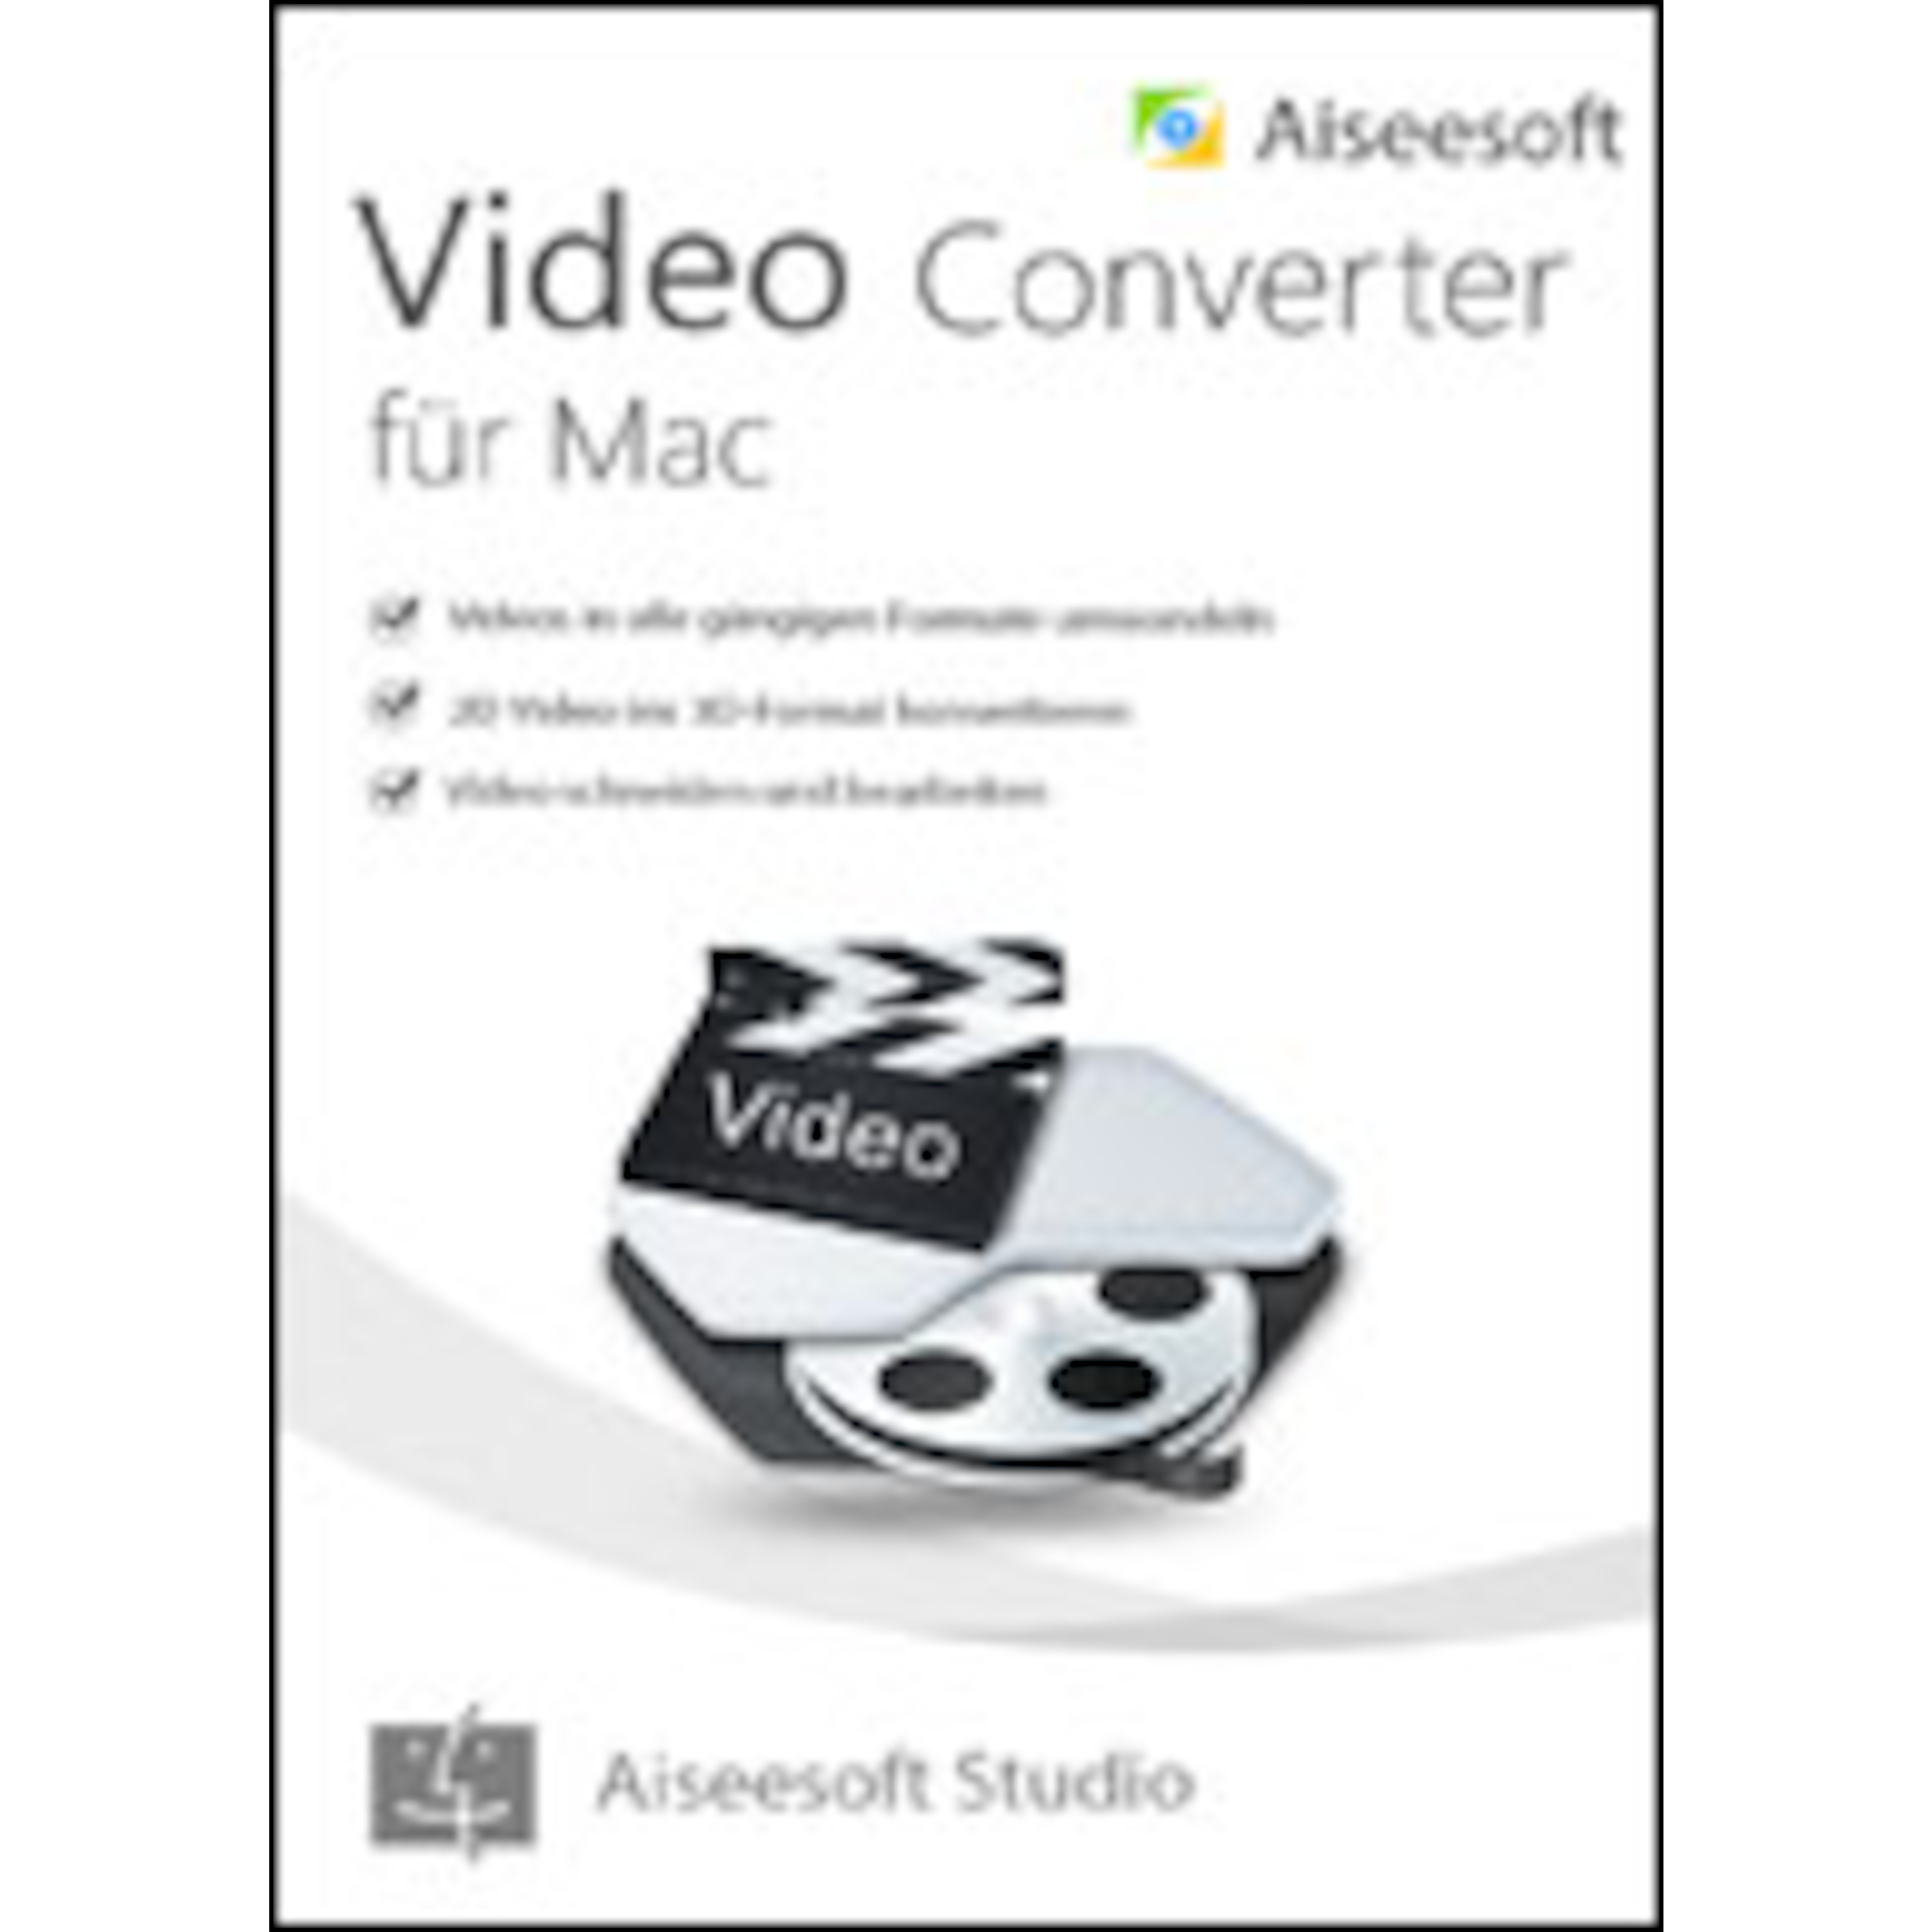 Aiseesoft Video Converter für Mac